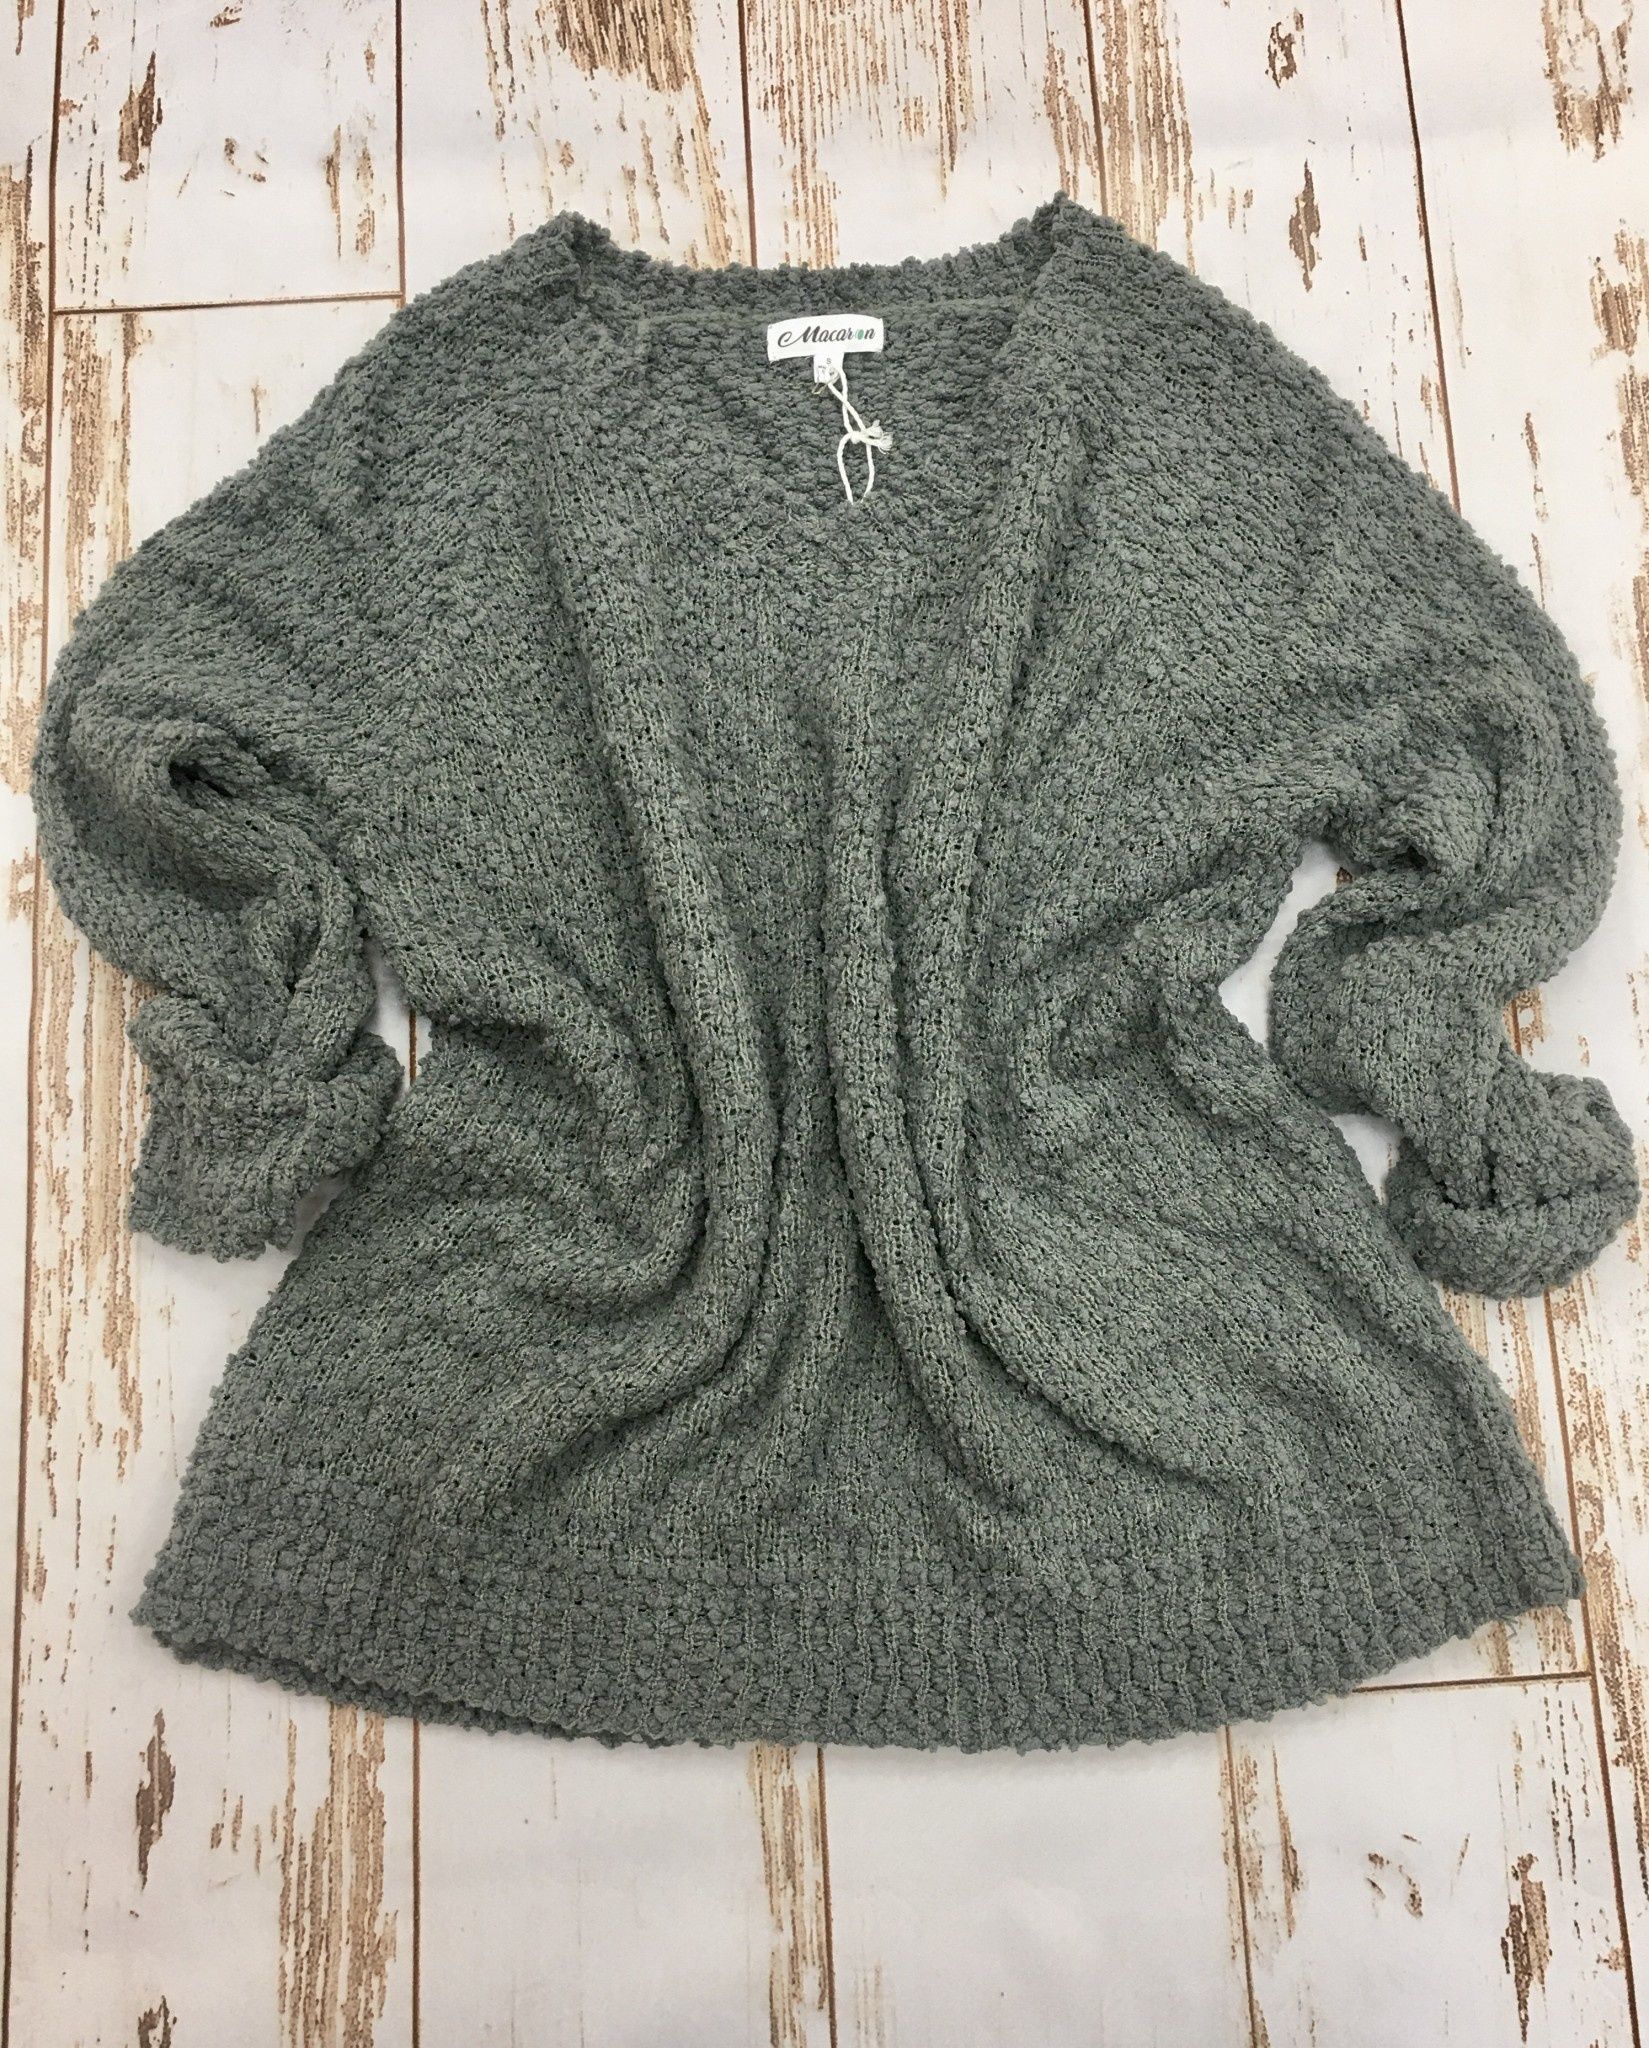 Bibi Cozy Popcorn Sweater